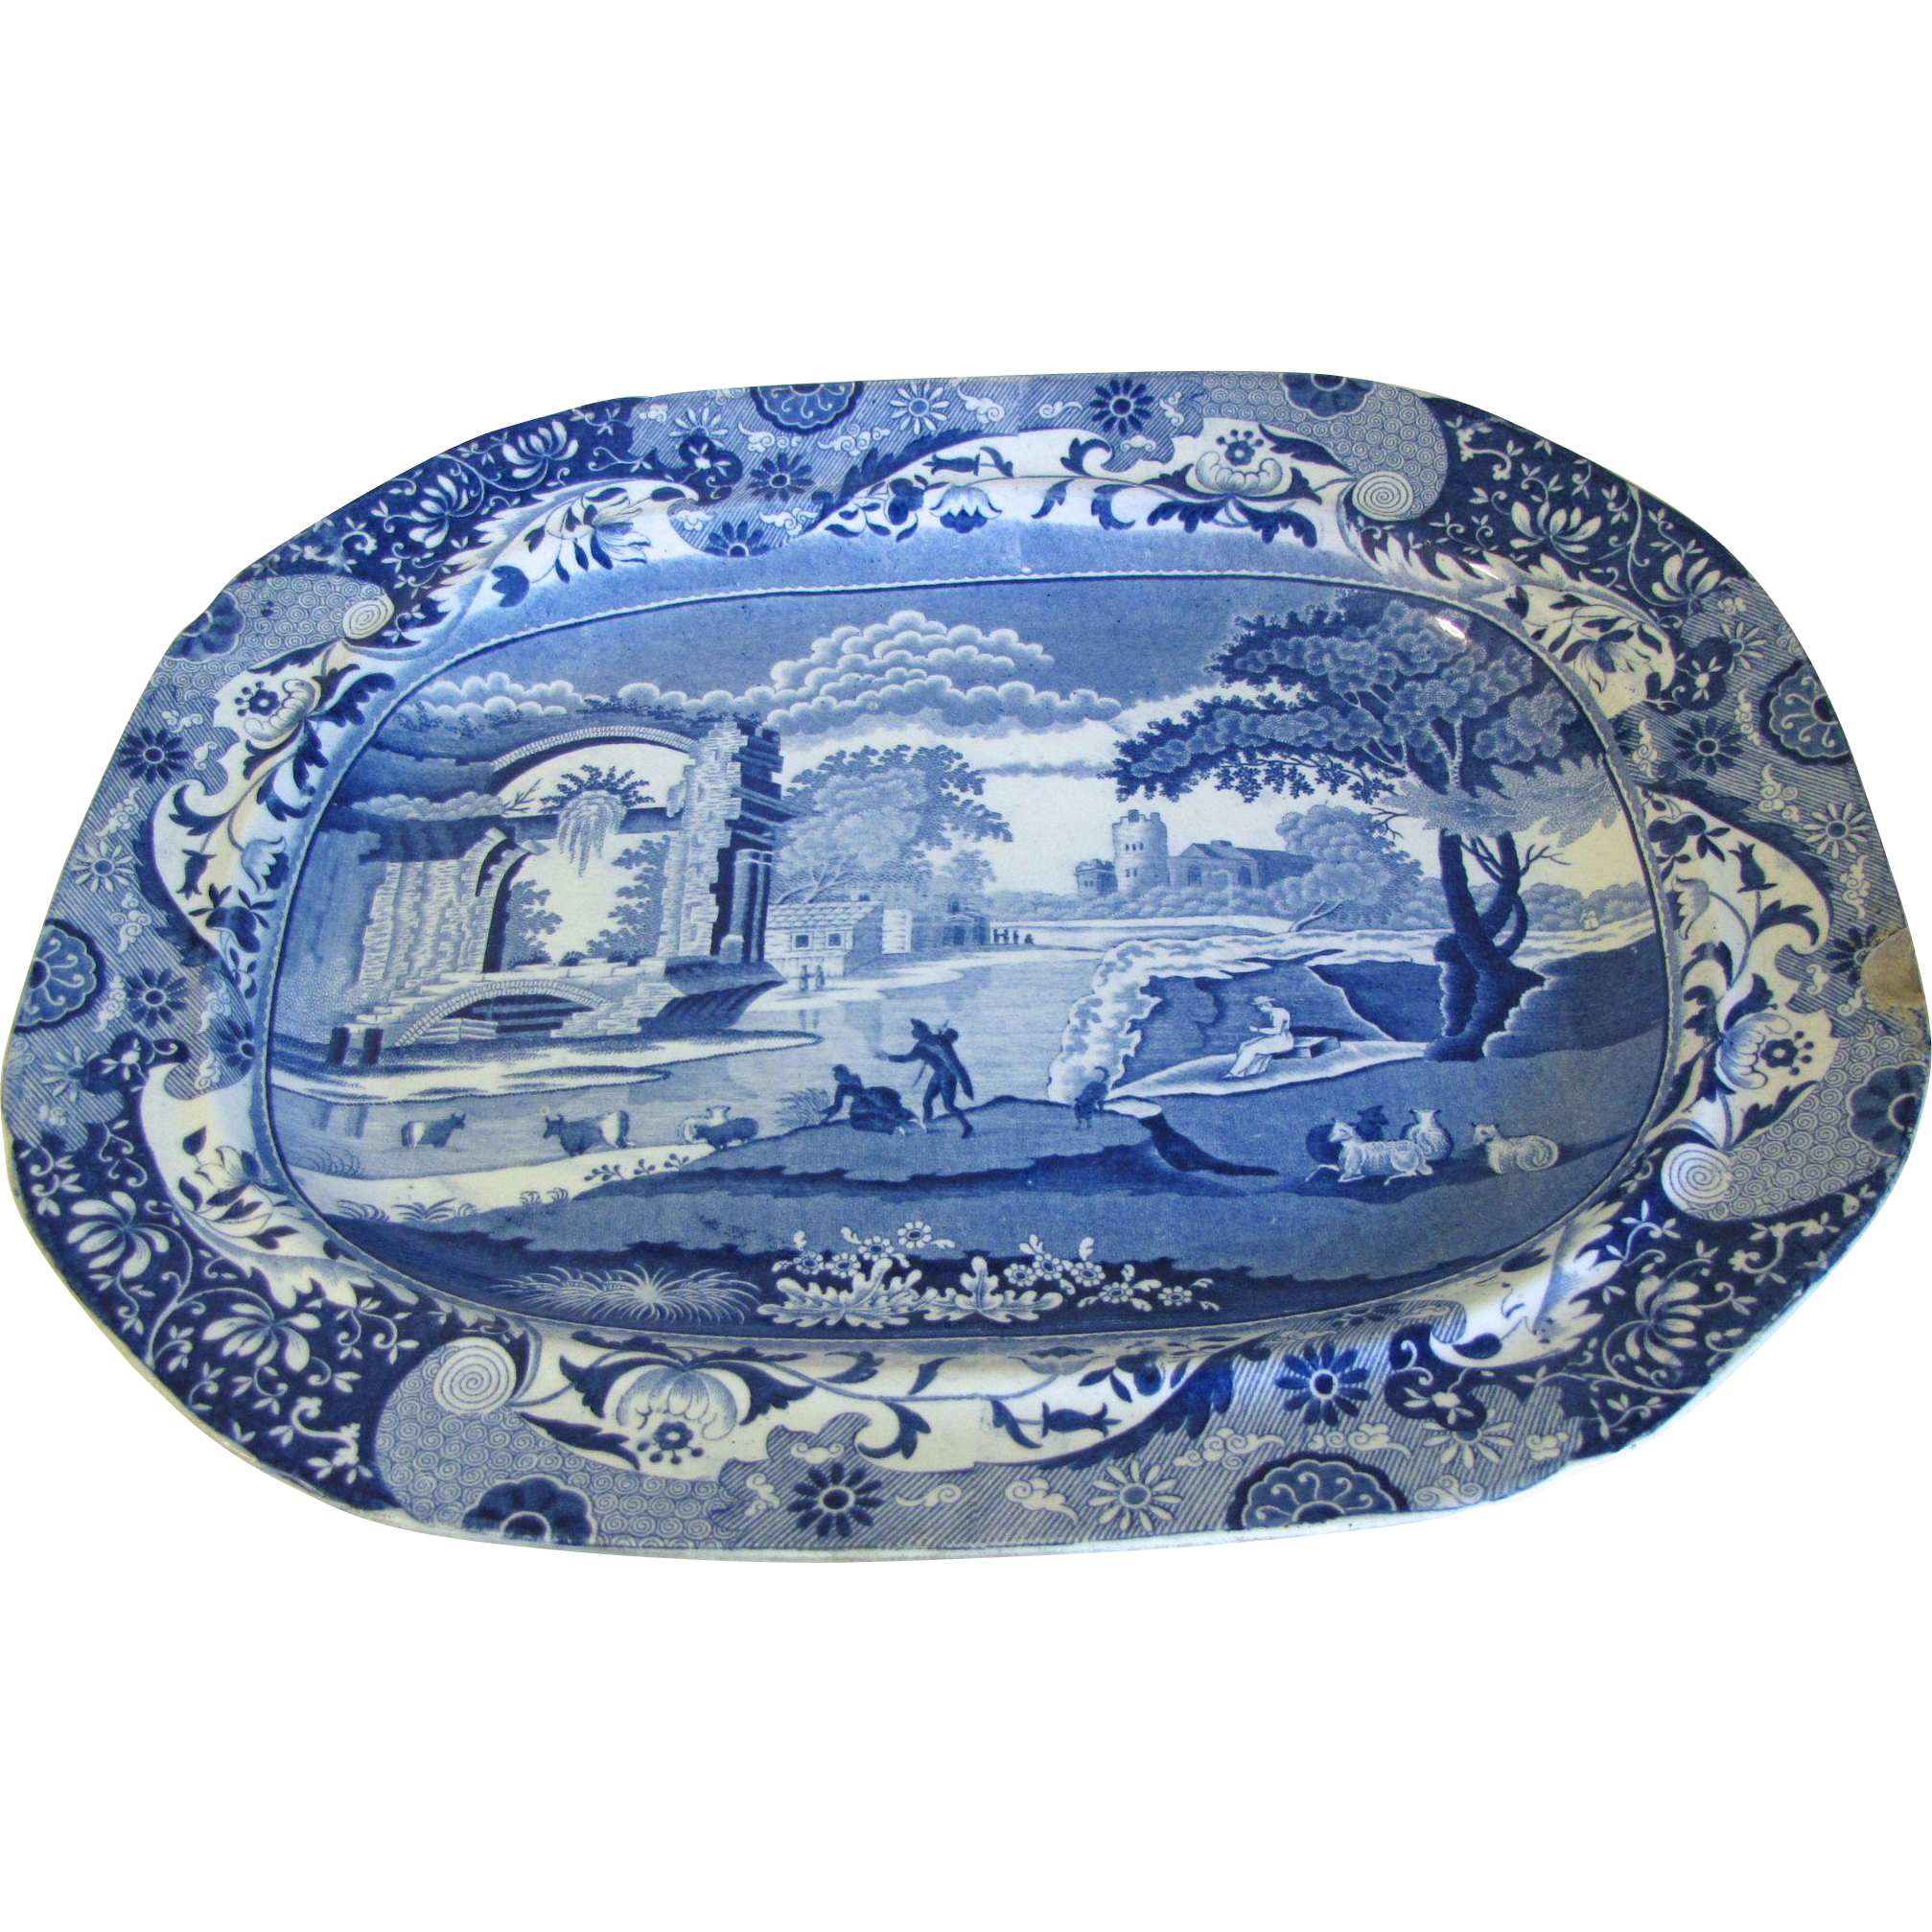 Very Large Antique Spode's Italian Blue Transferware Platter